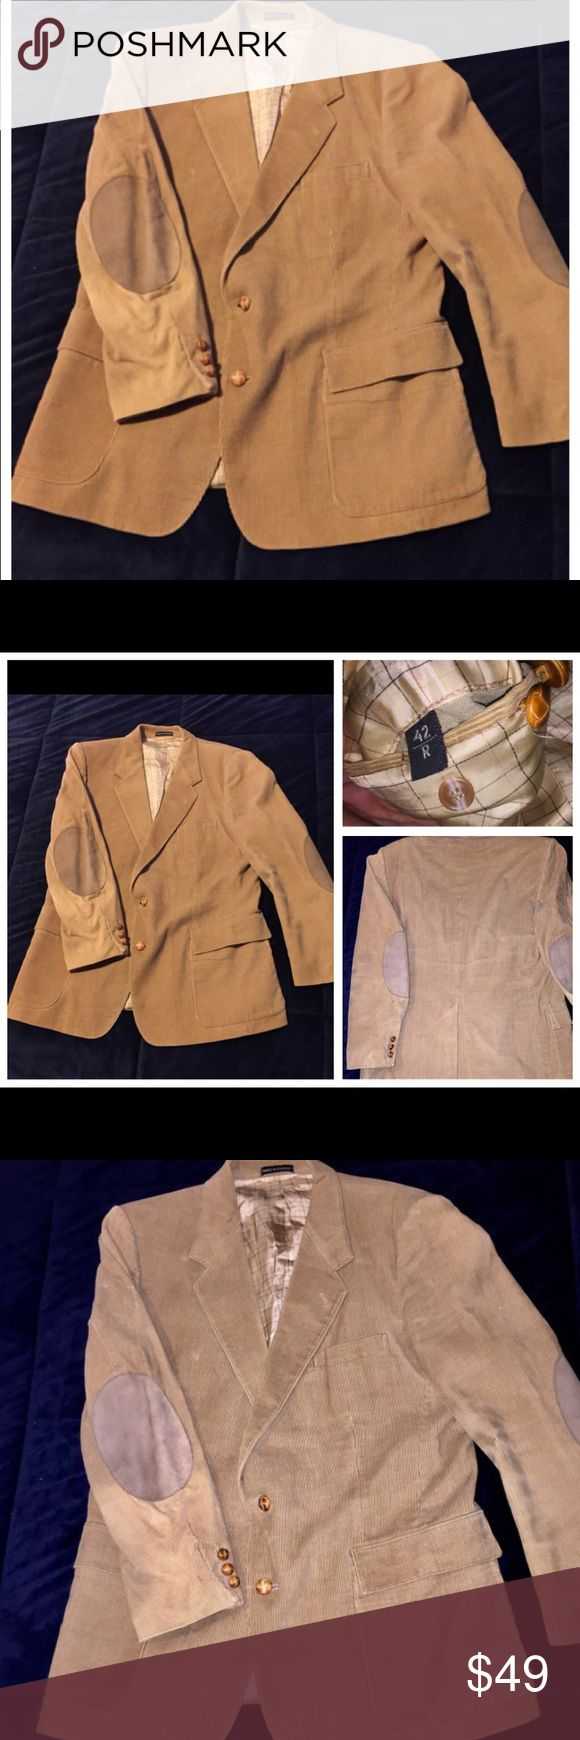 Vintage Tan Men's Corduroy Jacket w/ Suede sz 42 R Vintage Tan Men's Corduroy Blazer Jacket with Suede Elbow Patch Made in Romania sz 42 R  Measurements are as follow- Chest - 48 inches  Waist - 42 inches  Shoulder - 19 inches  Sleeve- 24 inches   Thanks for looking!  121916-4 Suits & Blazers Sport Coats & Blazers